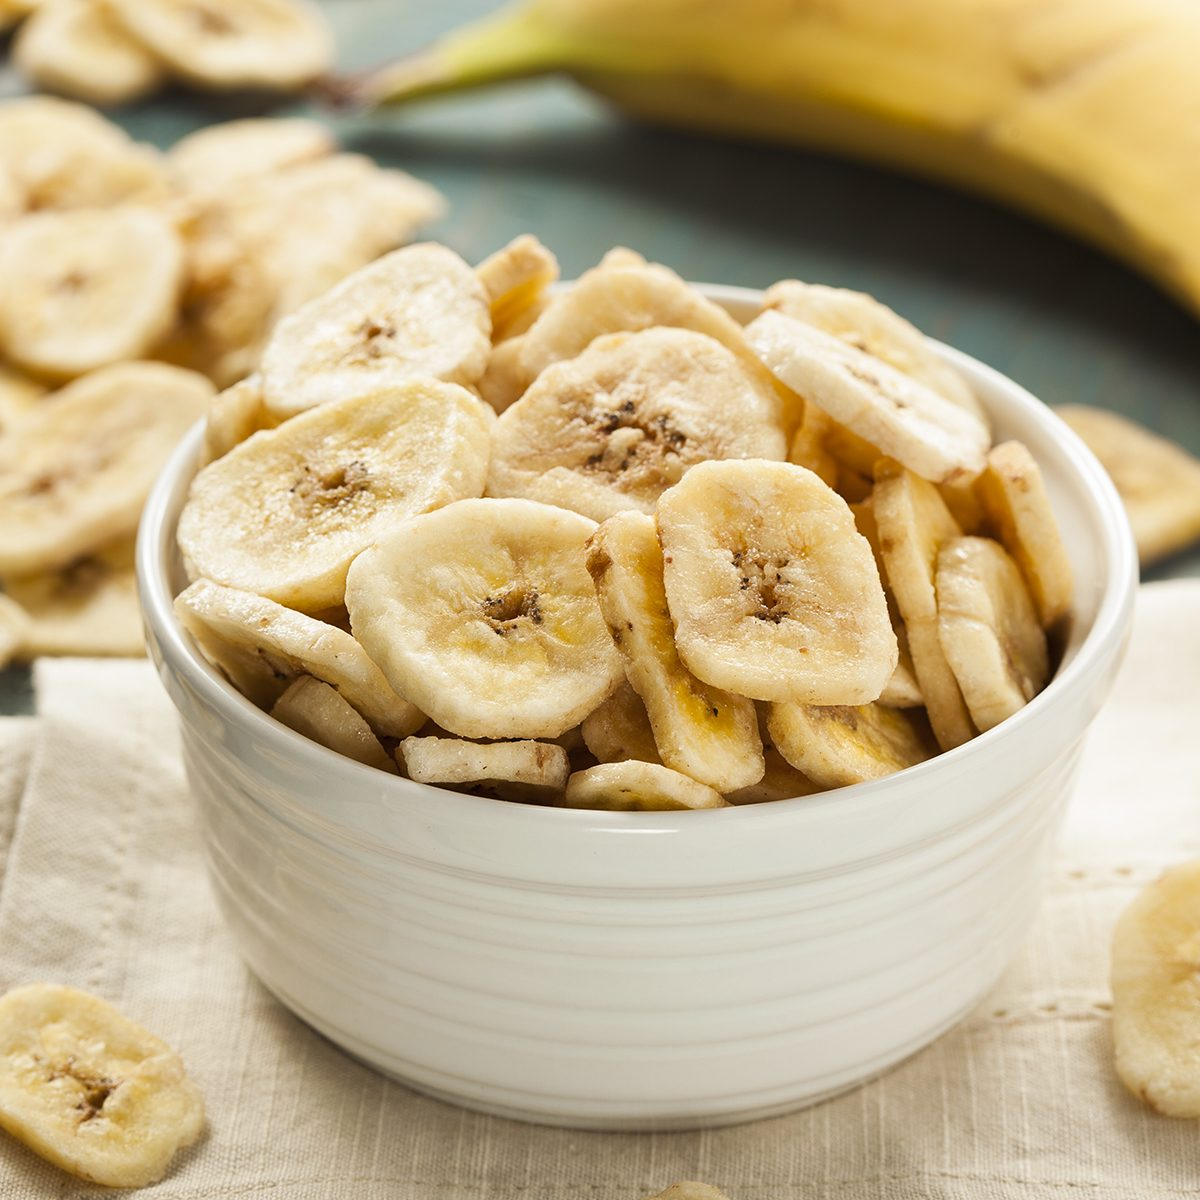 Homemade Dehydrated Banana Chips in a Bowl